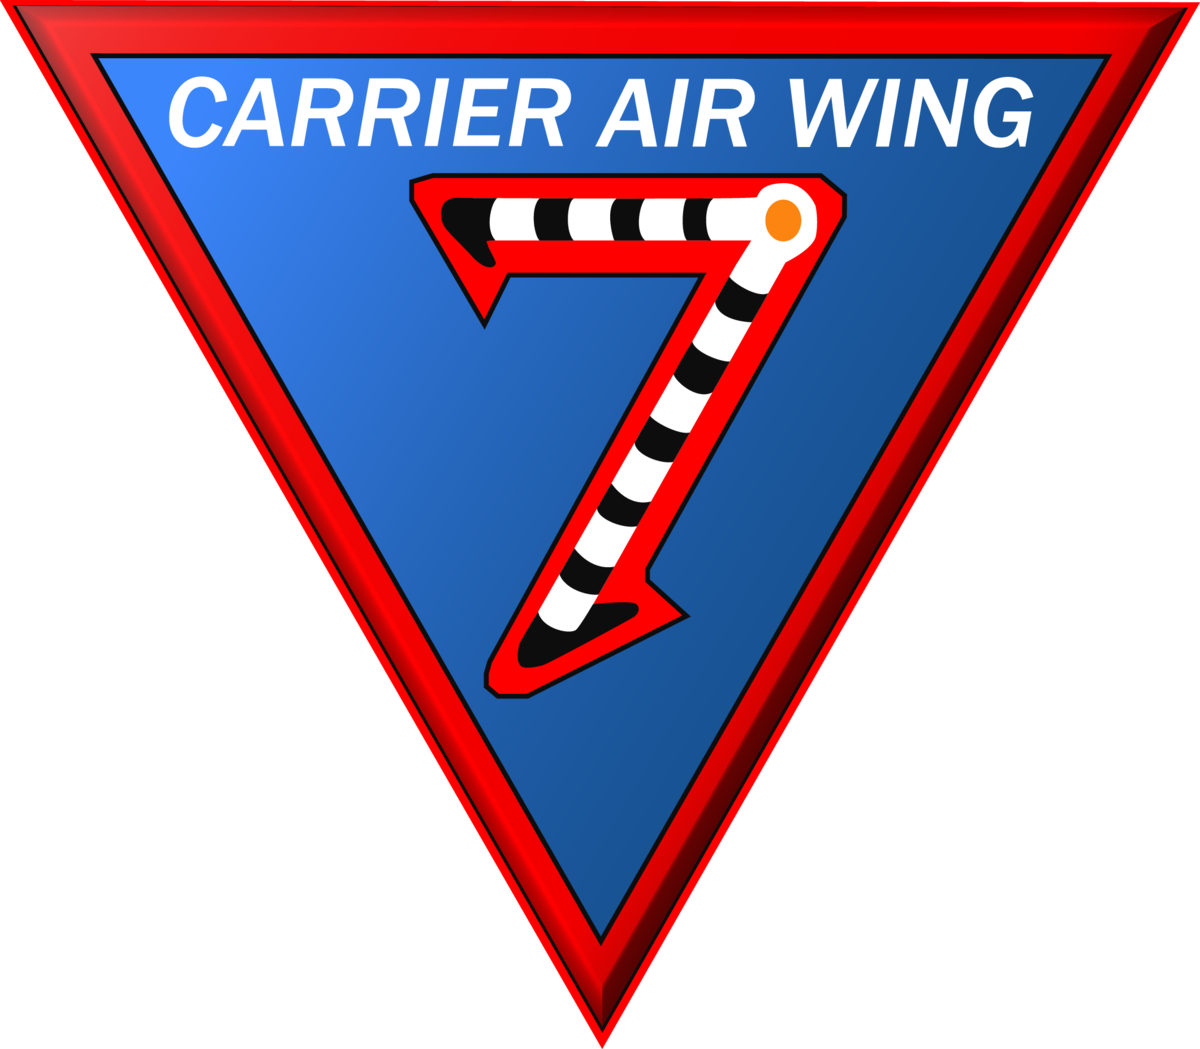 carrier air wing seven wikipedia